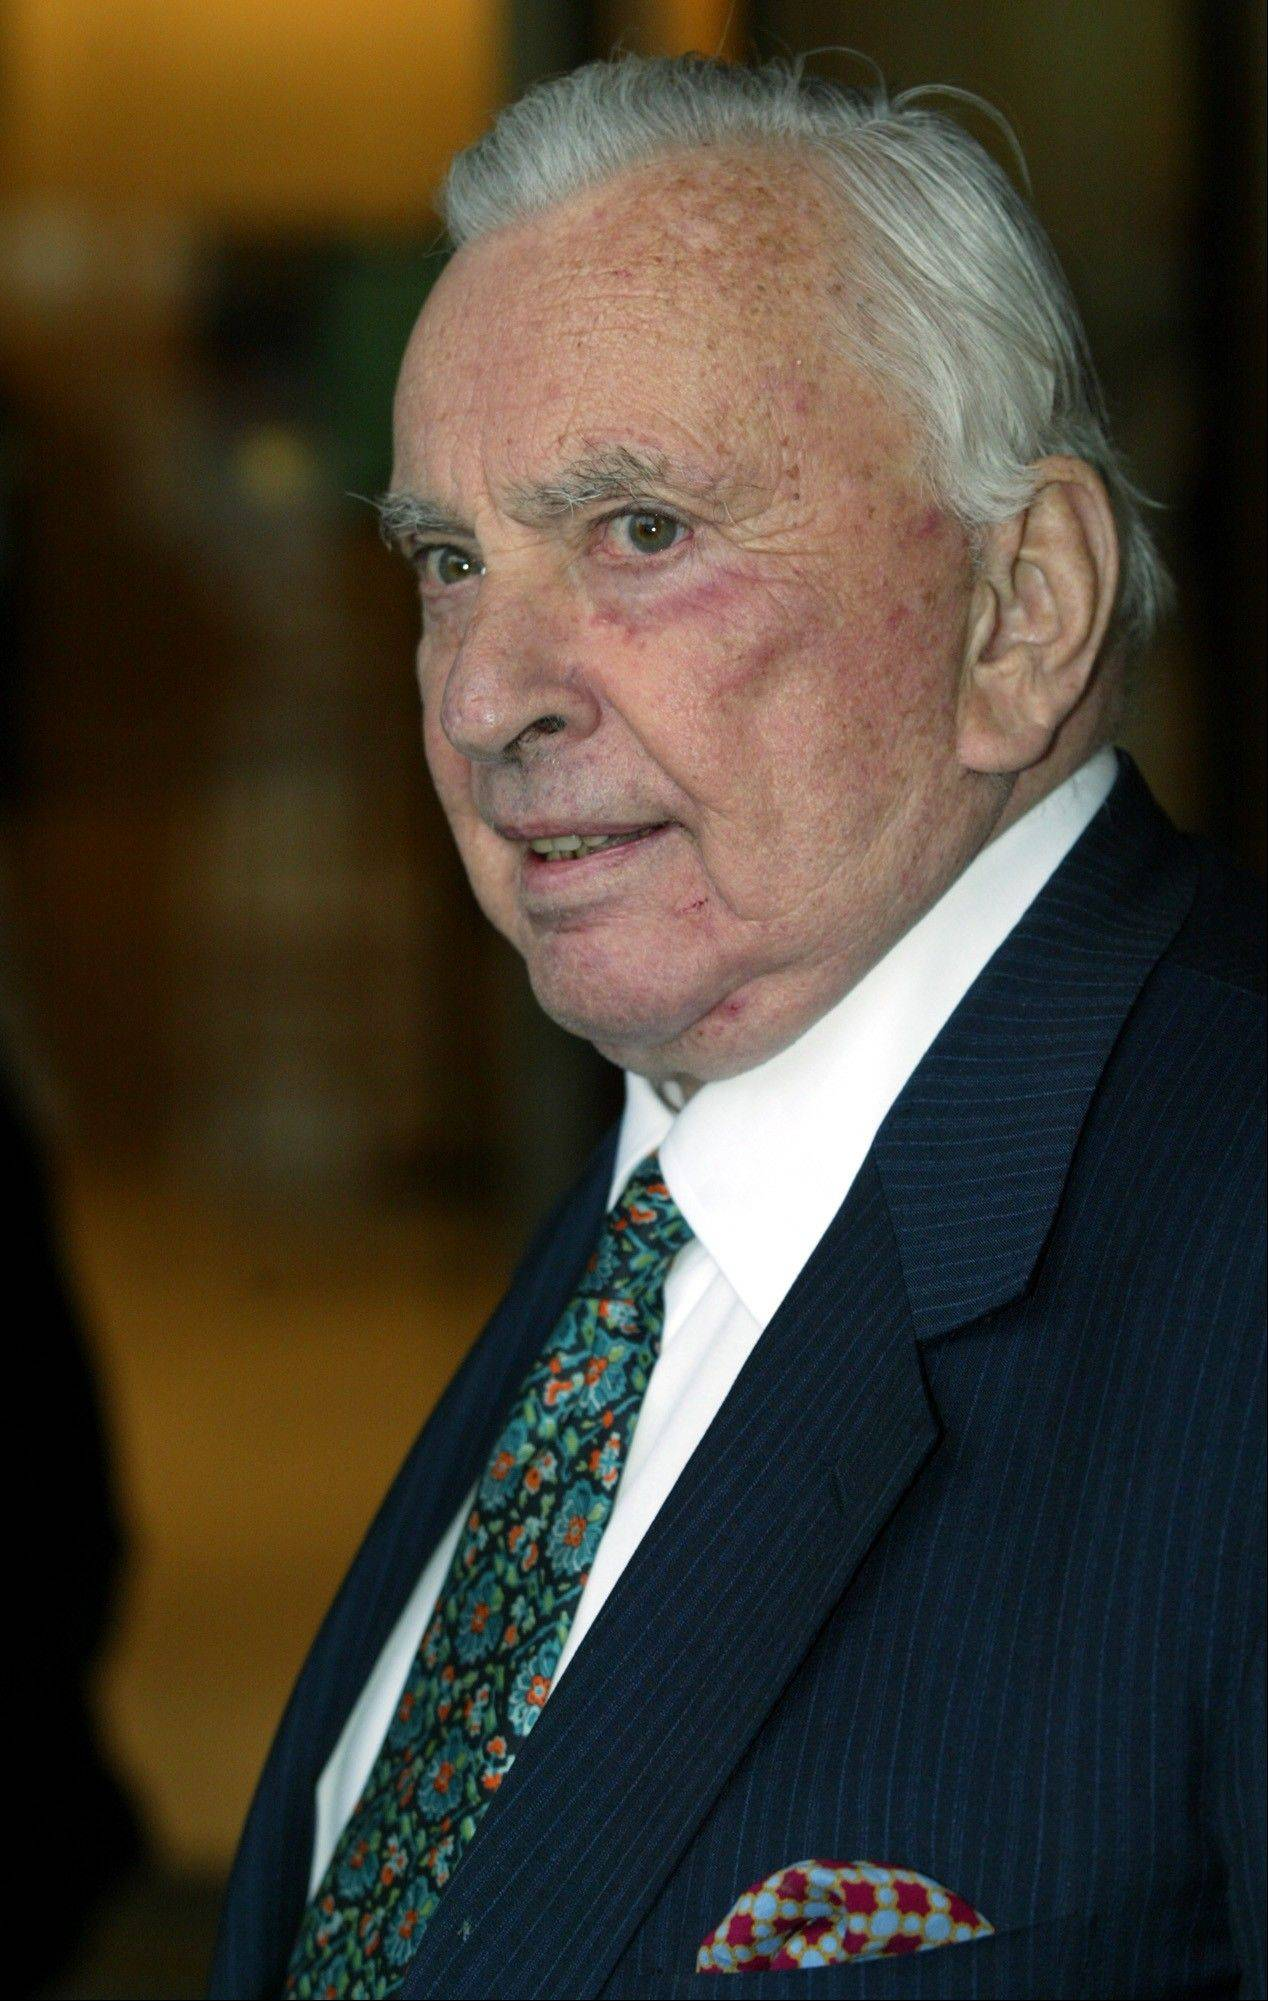 In this May 5, 2003, file photo, author Gore Vidal arrives for the Film Society of Lincoln Center's gala event in New York. Vidal died Tuesday at his home in Los Angeles. He was 86.